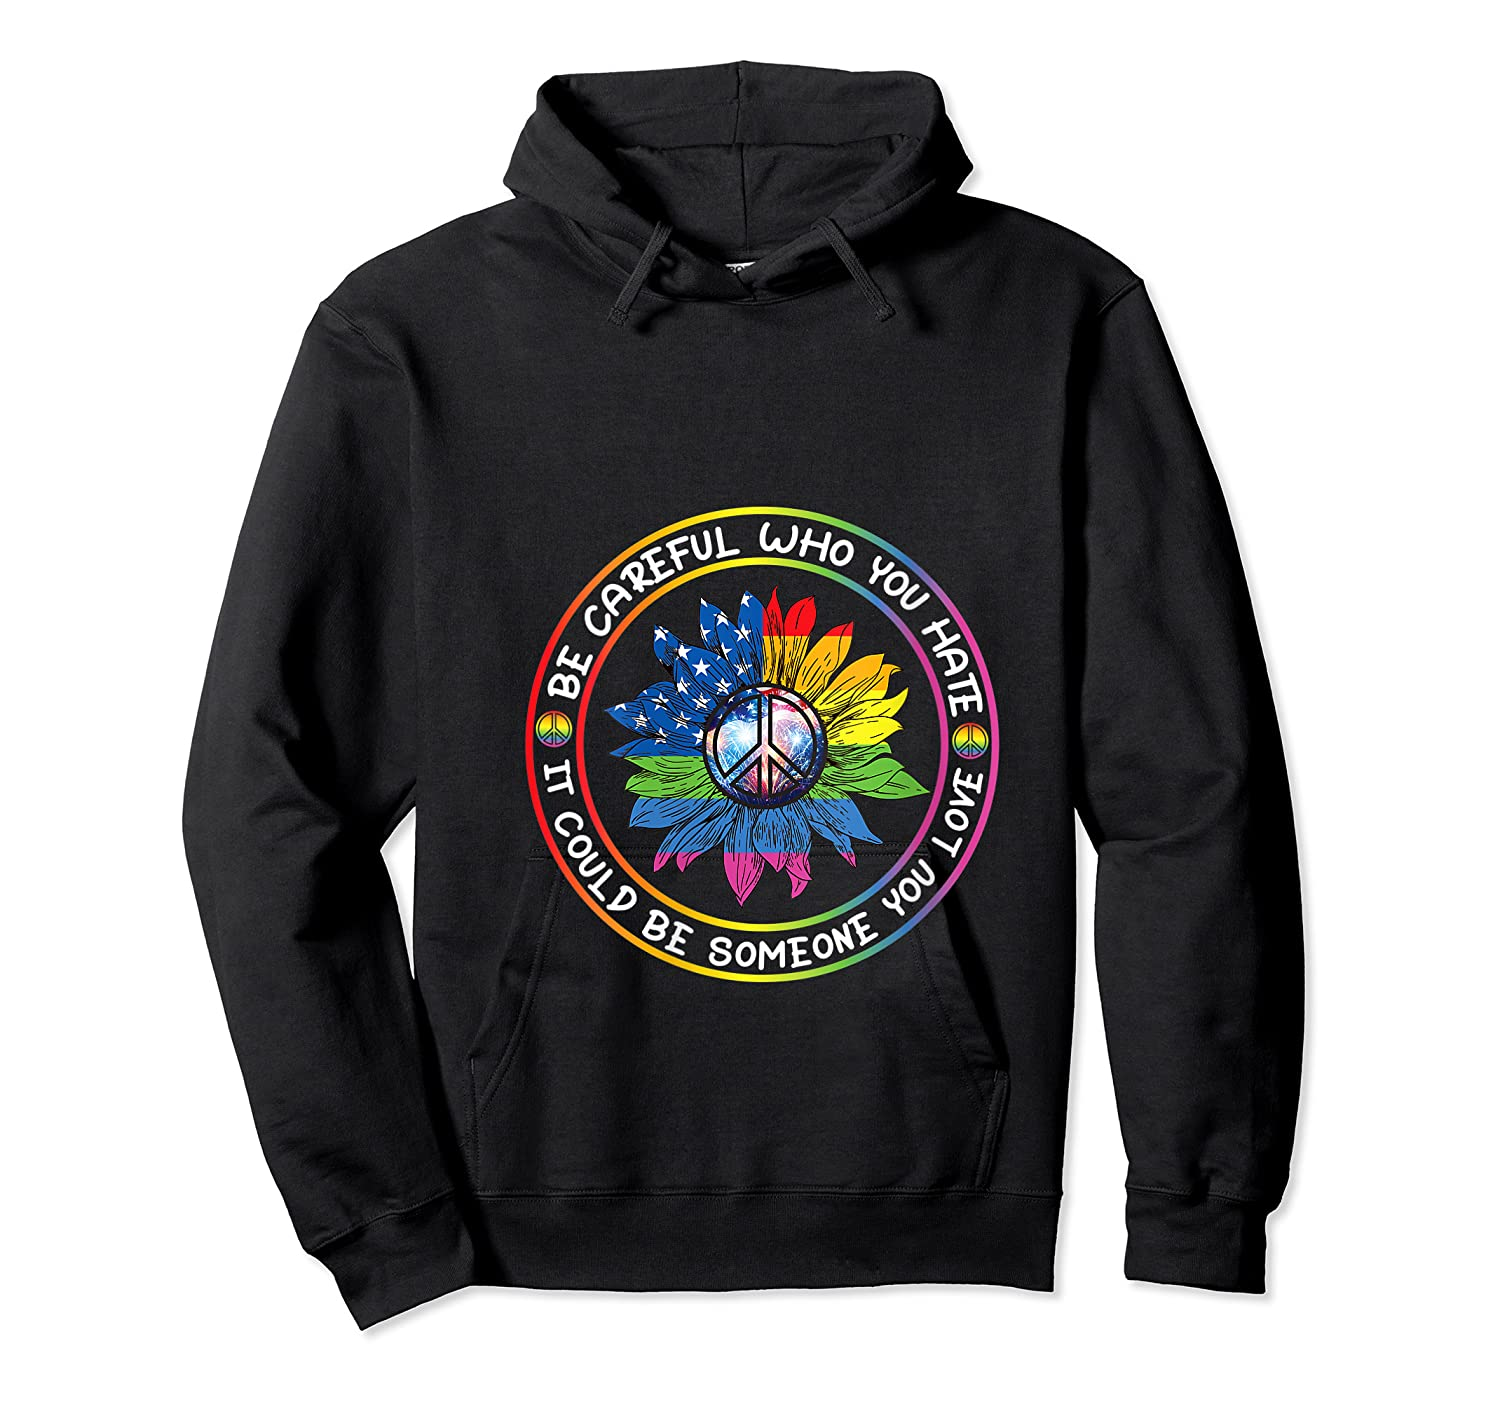 Be Careful Who You Hate It Could Be Someone Lgbt Gift Shirts Unisex Pullover Hoodie